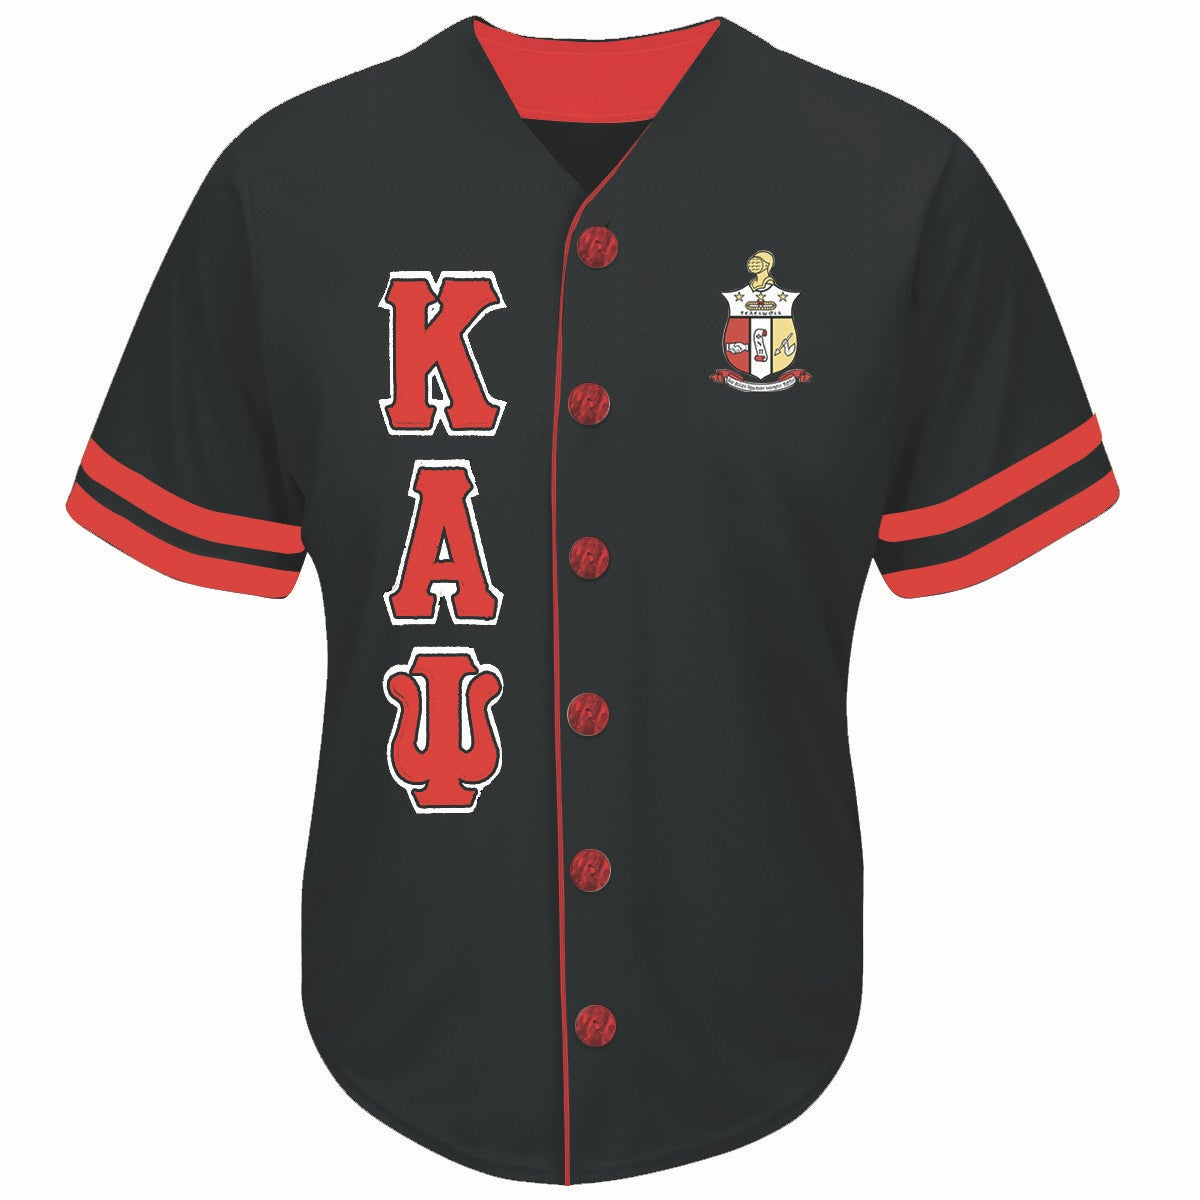 Image of Baseball Jersey (Black)